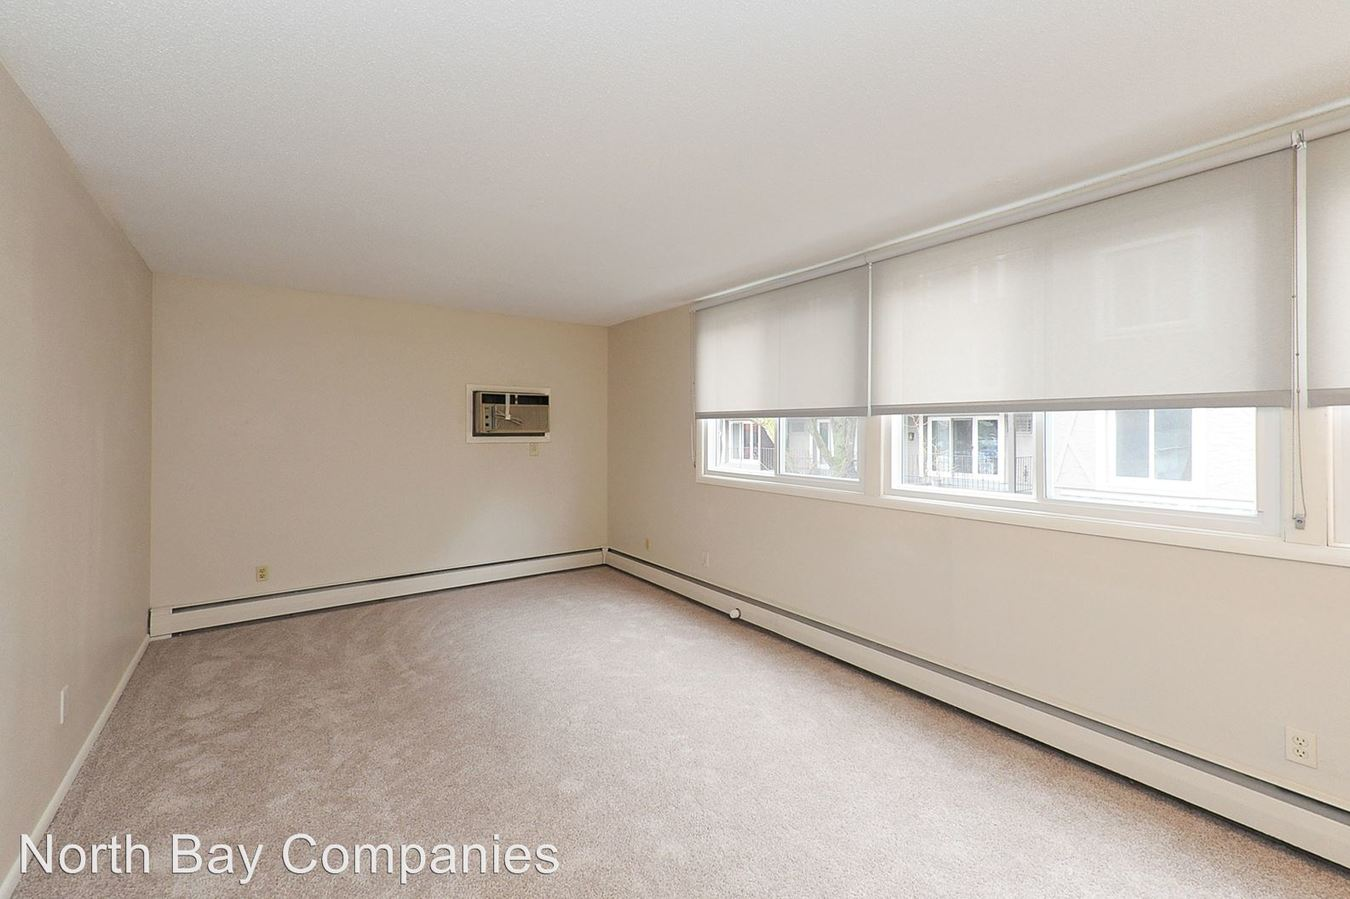 1 Bedroom 1 Bathroom Apartment for rent at 3620, 3708, 3720 West 32nd St in Minneapolis, MN